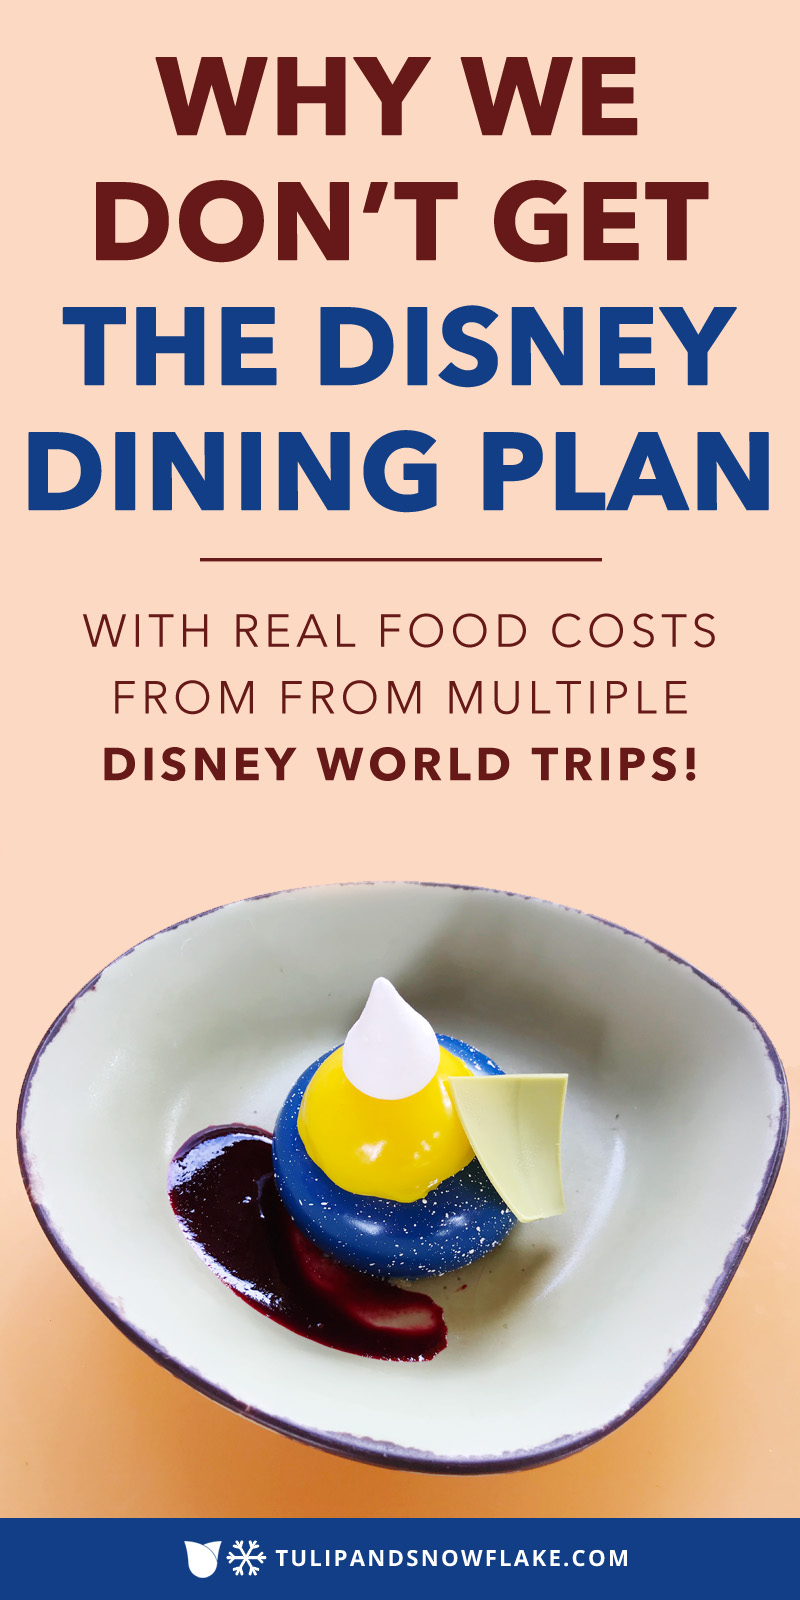 Why we don't get the Disney Dining Plan